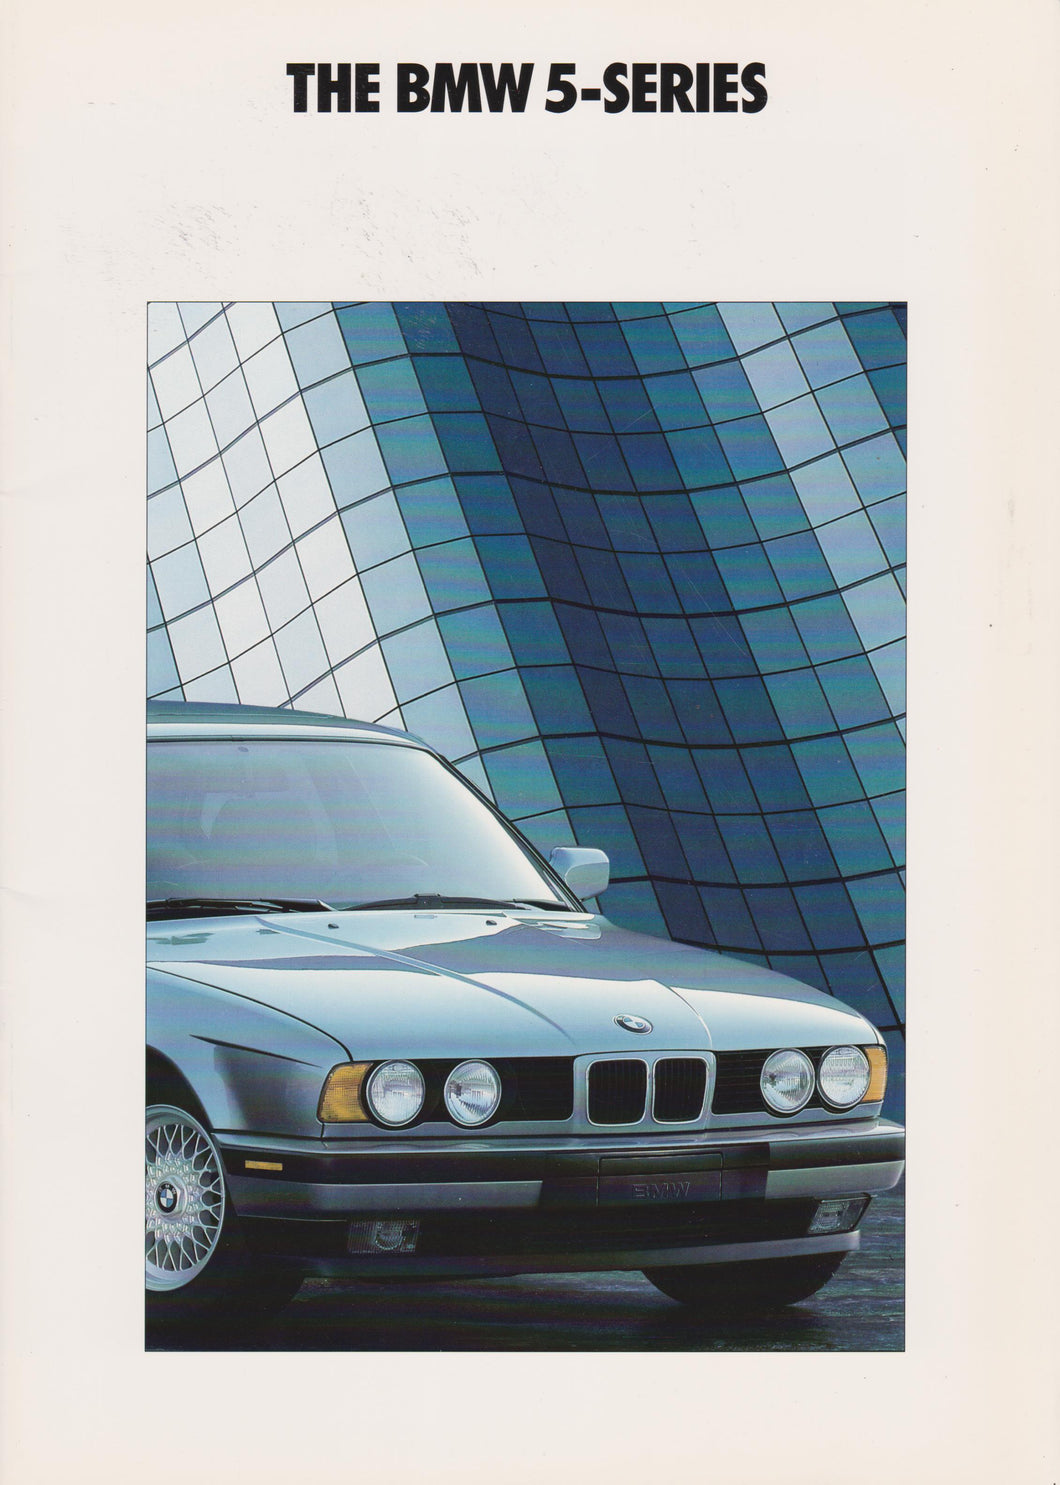 Brochure - THE BMW 5-SERIES (1992 E34)